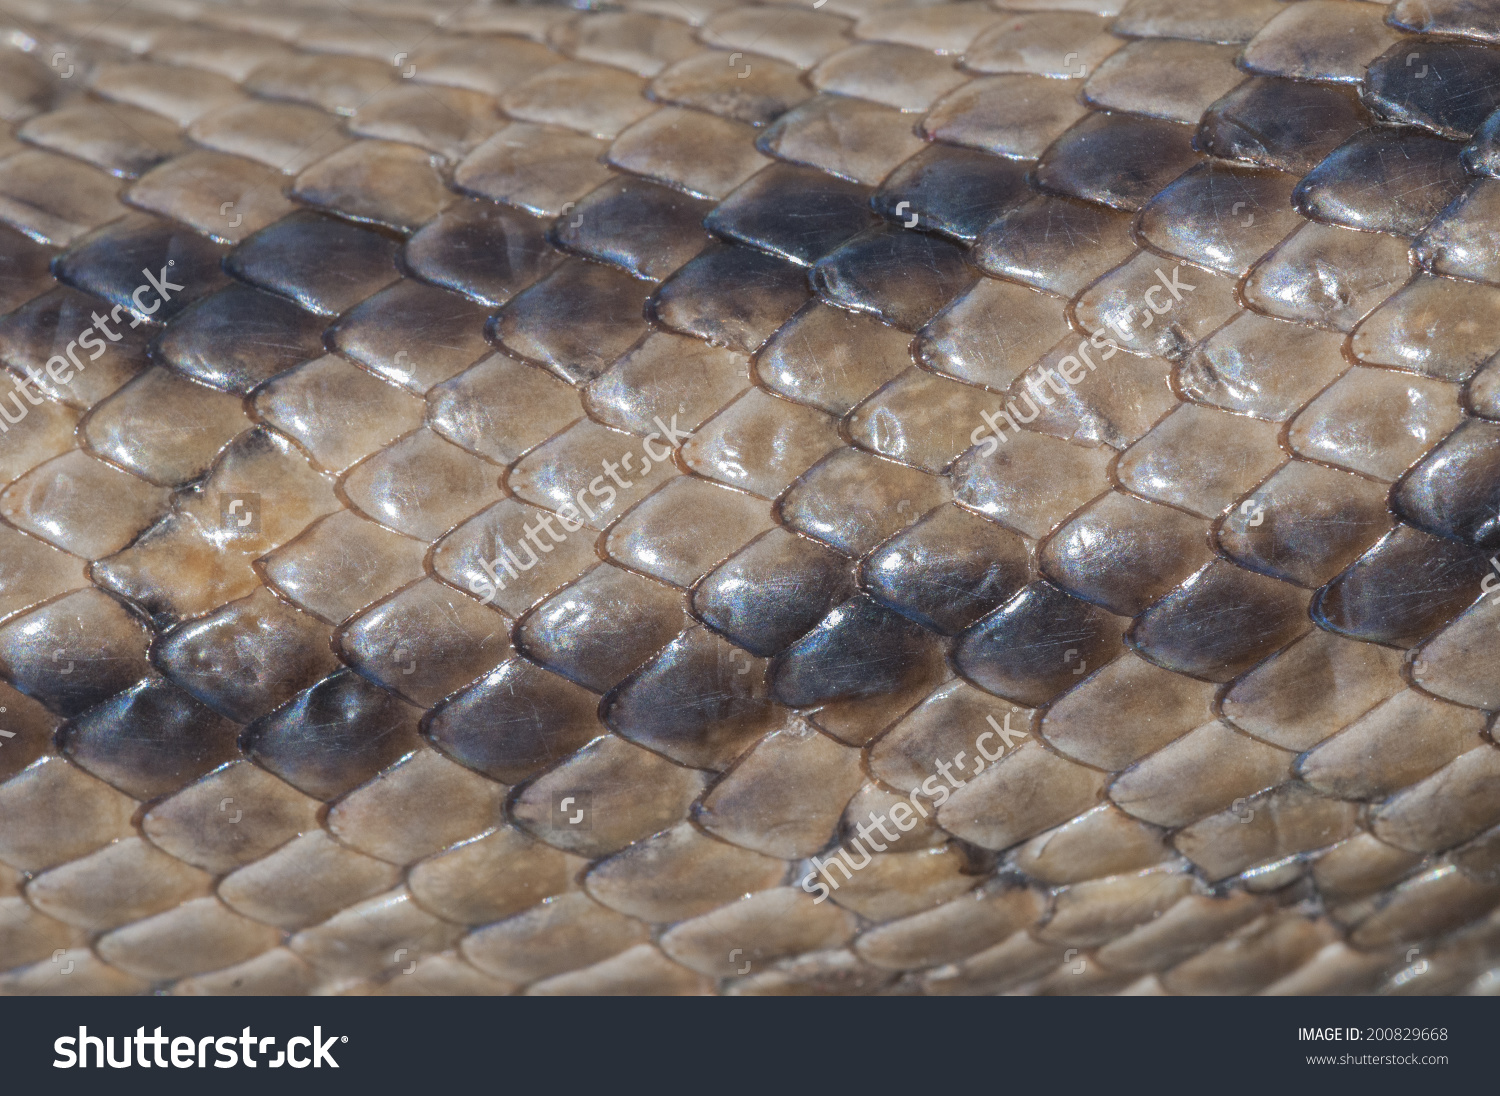 Scaly Skin Texture Snake Ladder Stock Photo 200829668.